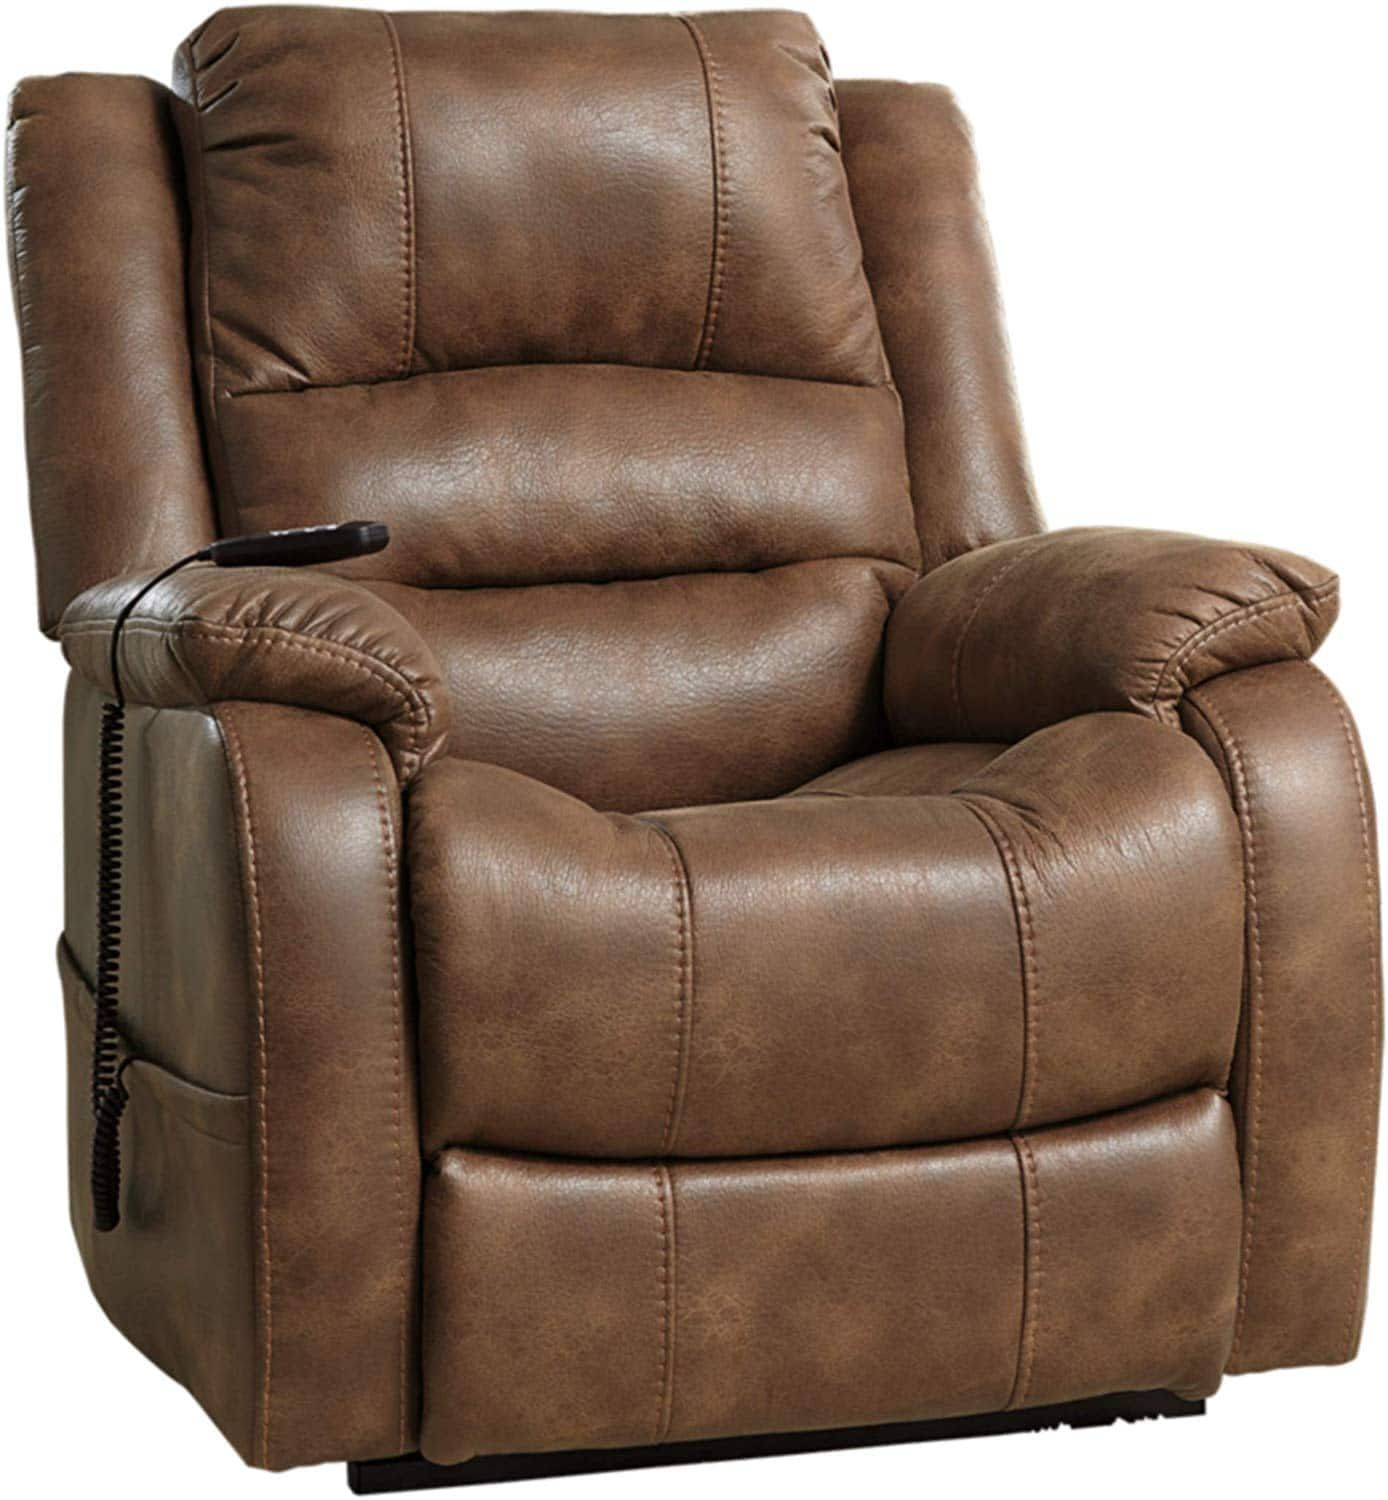 What Are The Best Lift Recliners For Elderly Lift Recliners Recliner Chair Recliner